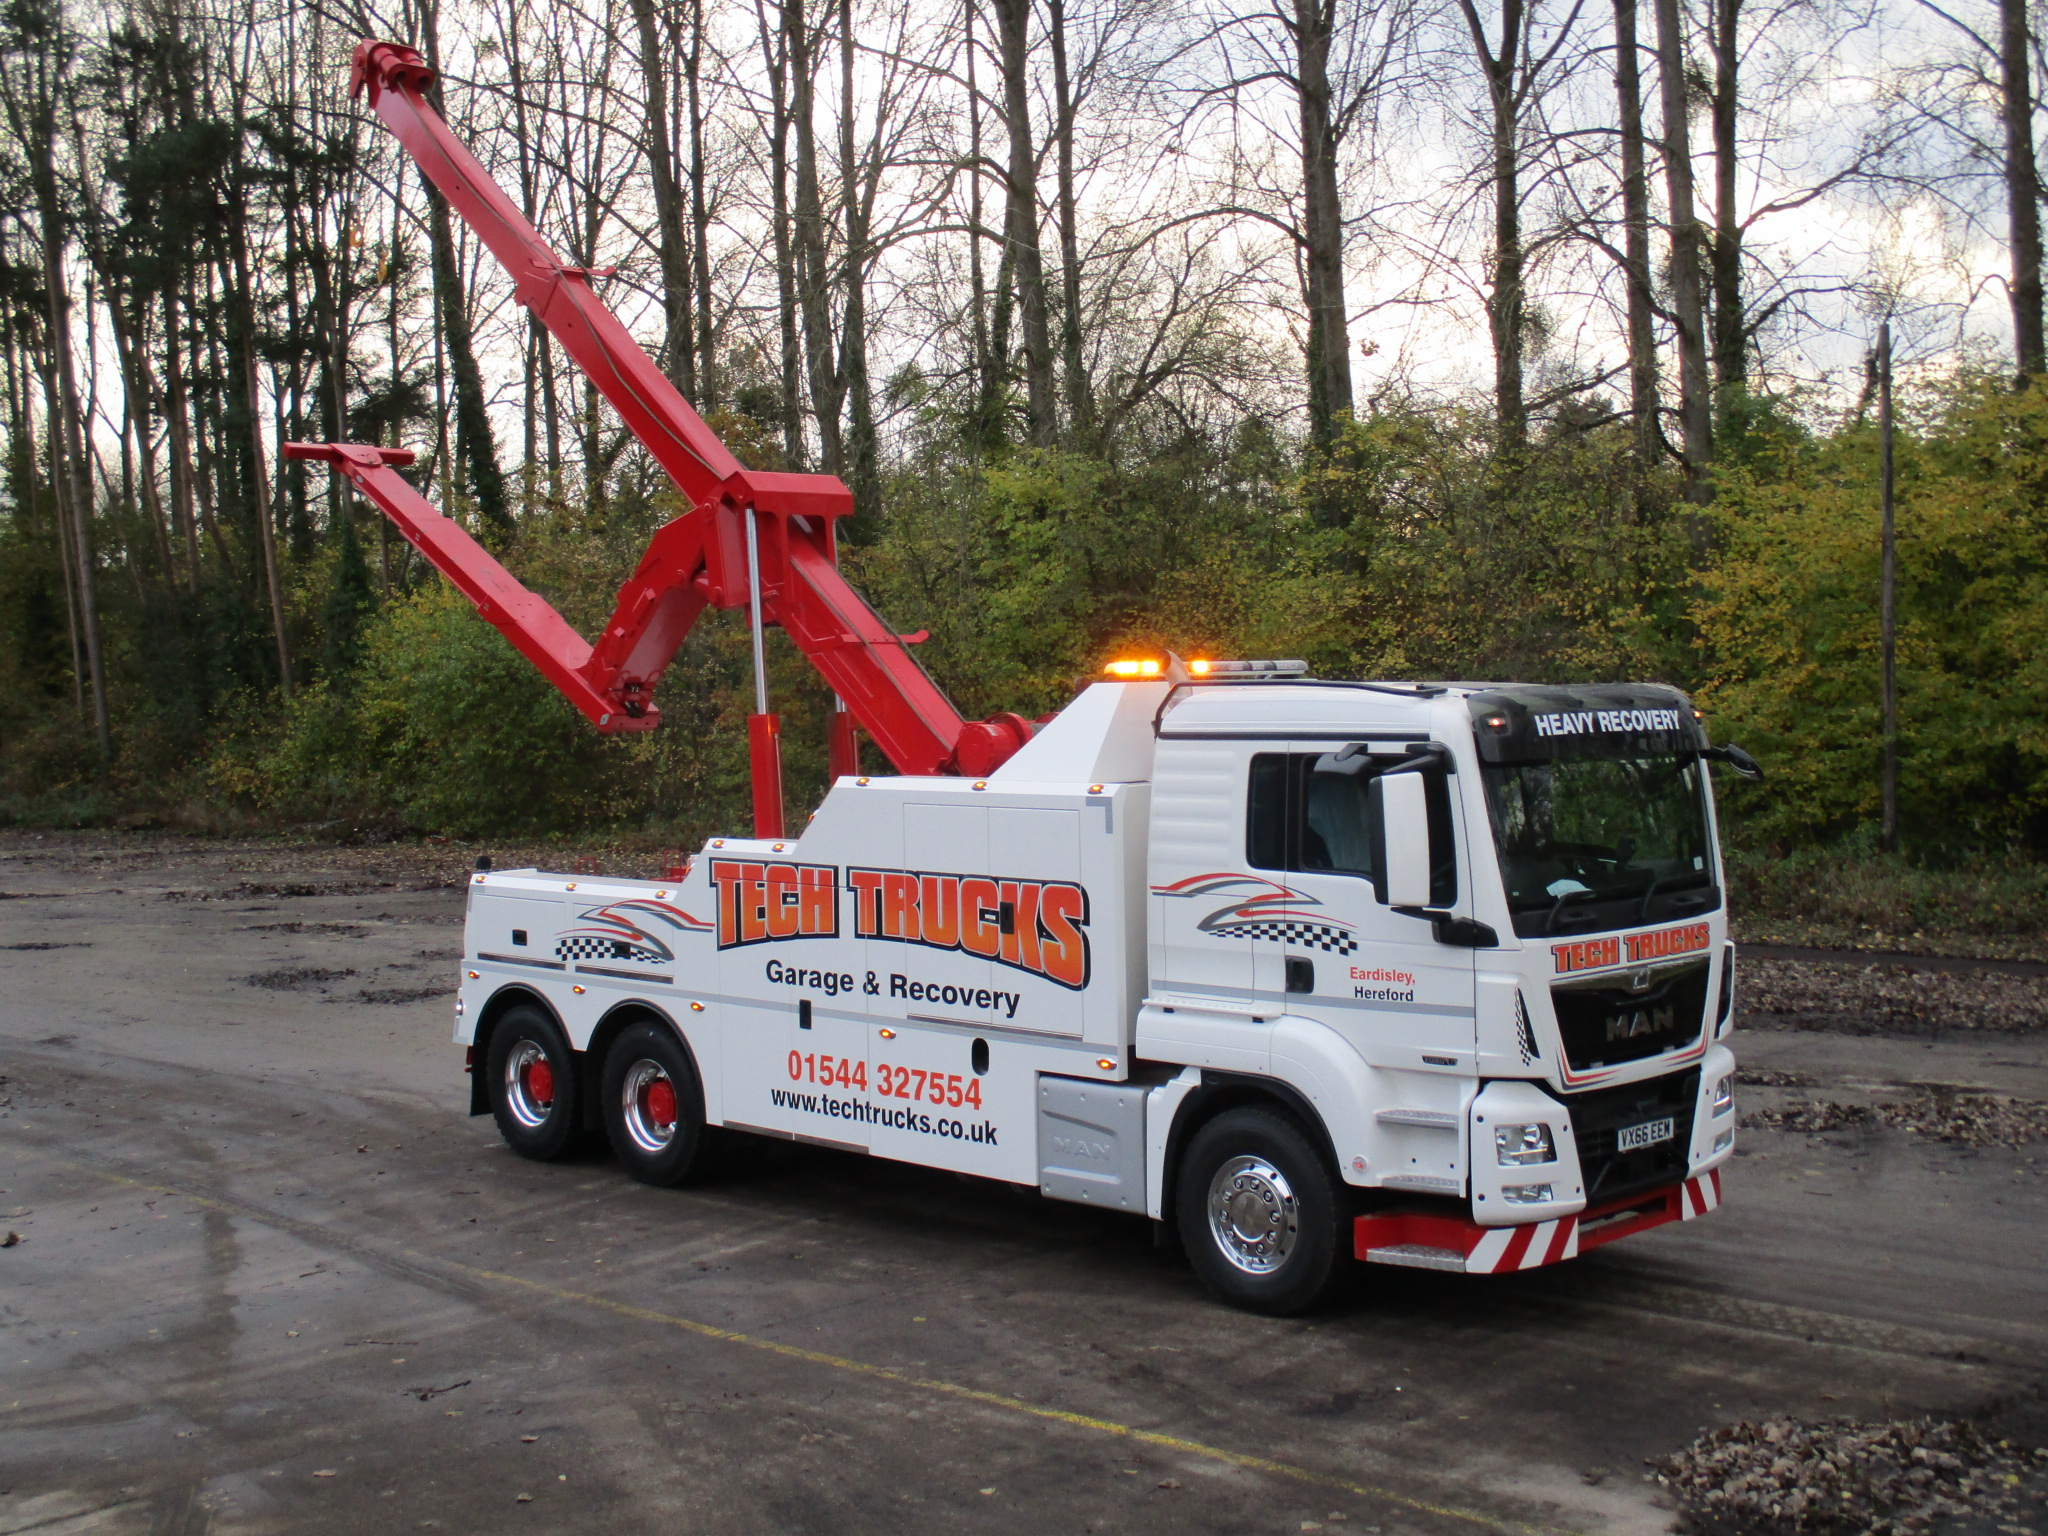 New Recoverer Trident For Tech Trucks